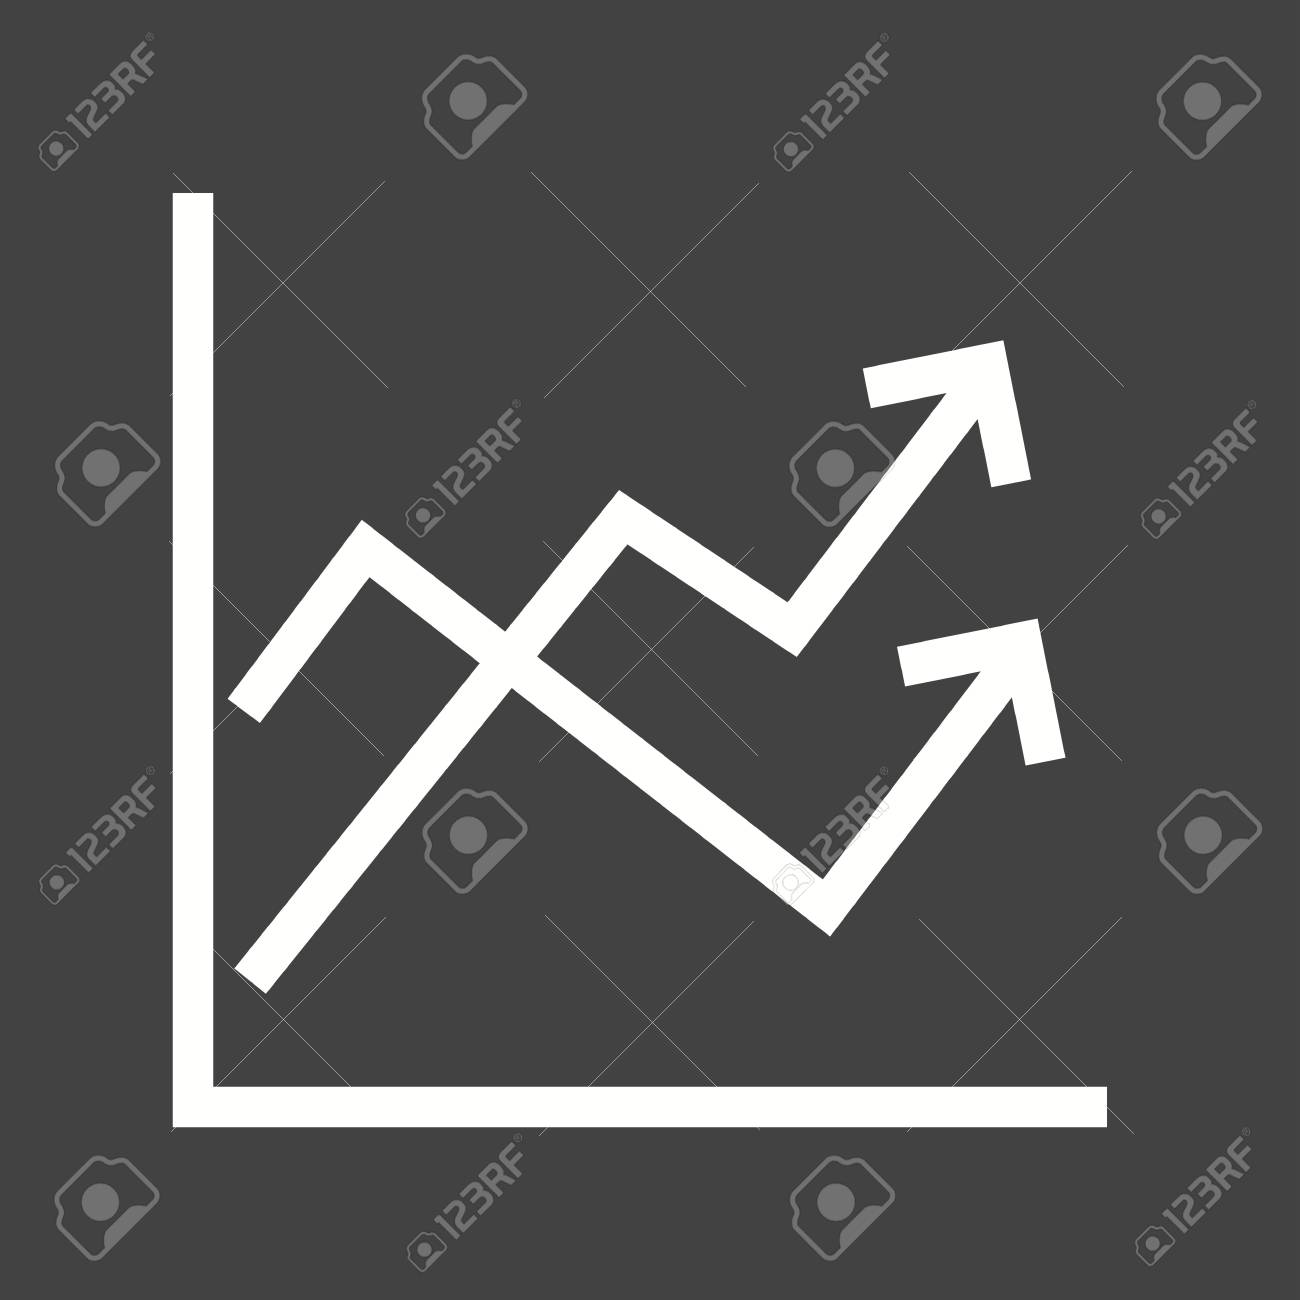 Graph, mathematical, function icon vector image  Can also be